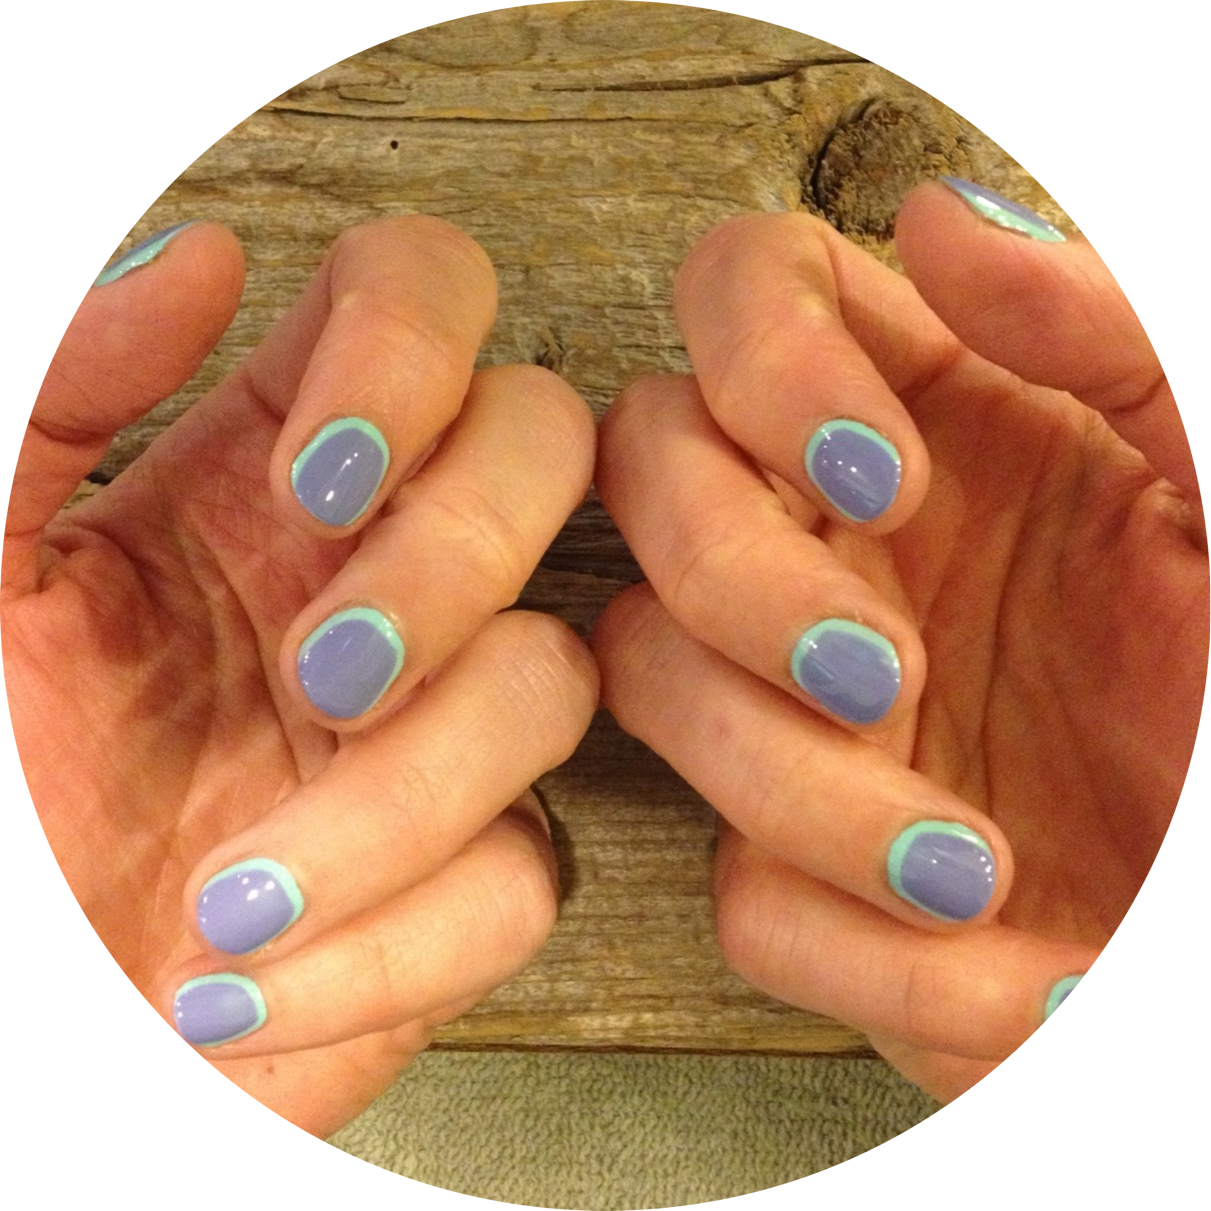 Here's one of the hairstylists nails I've done by using Lungwort as an accent color.